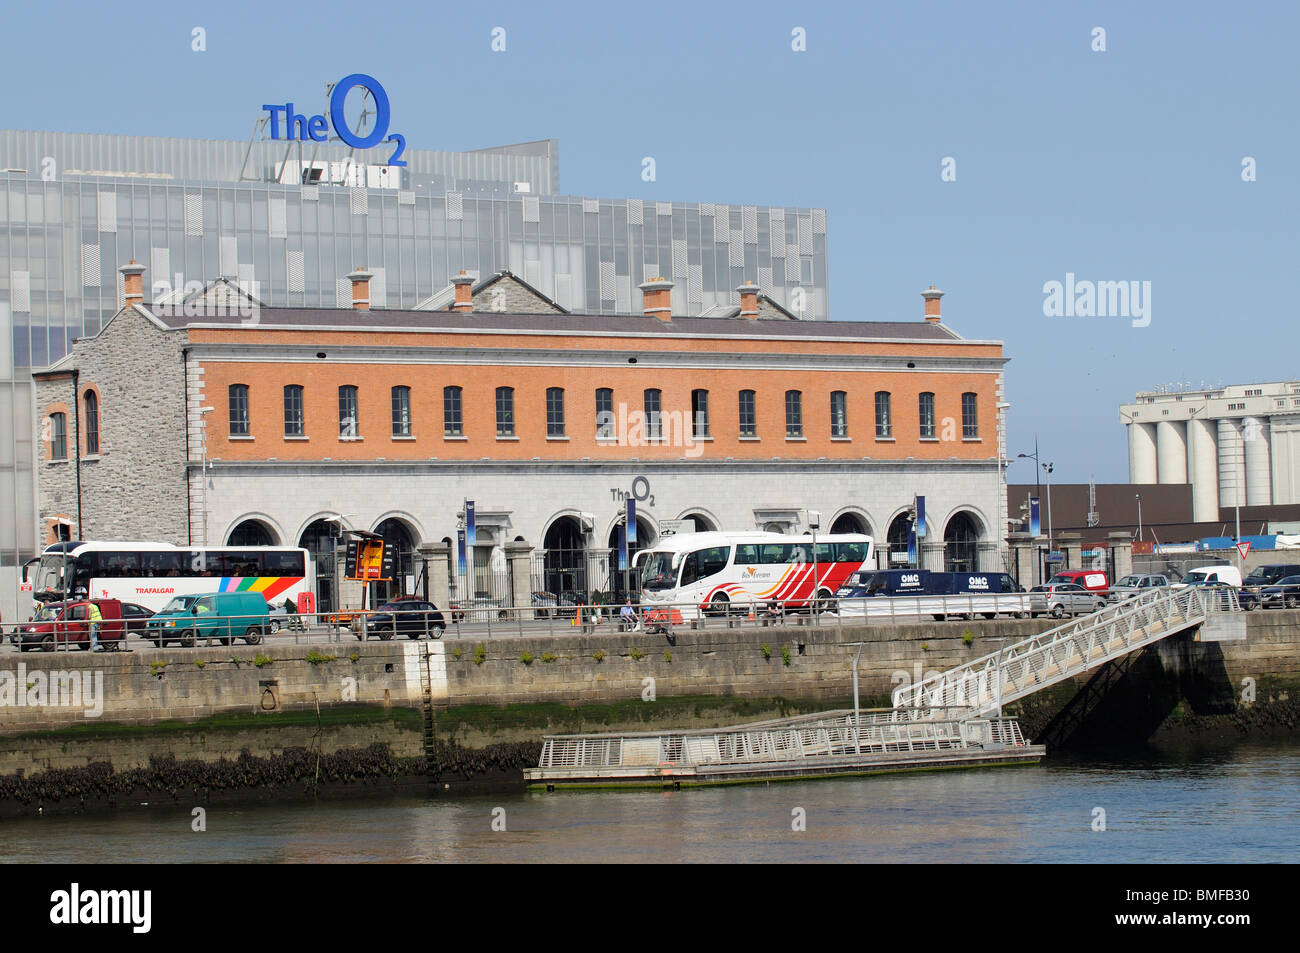 The O2 arena seen from the River Liffey Dublin Ireland - Stock Image